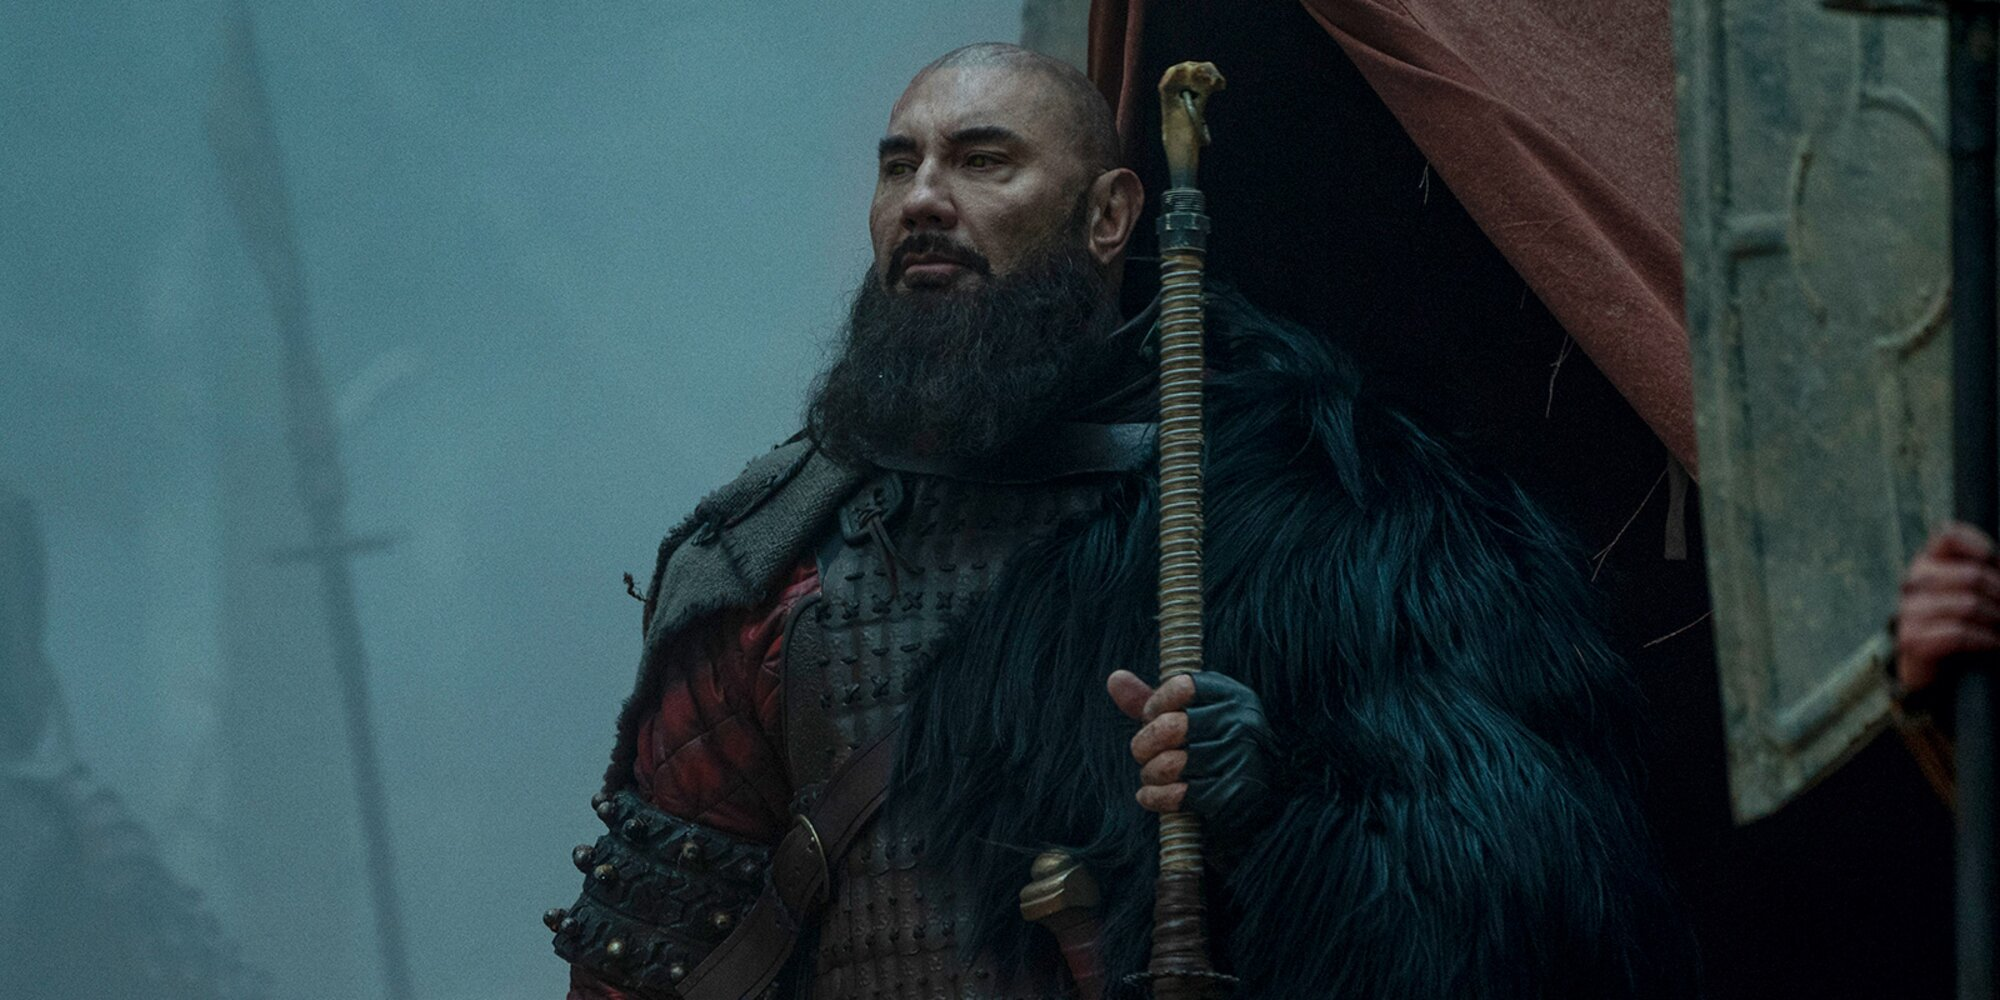 Dave Bautista and Jason Momoa square off in epic 'See' season 2 trailer